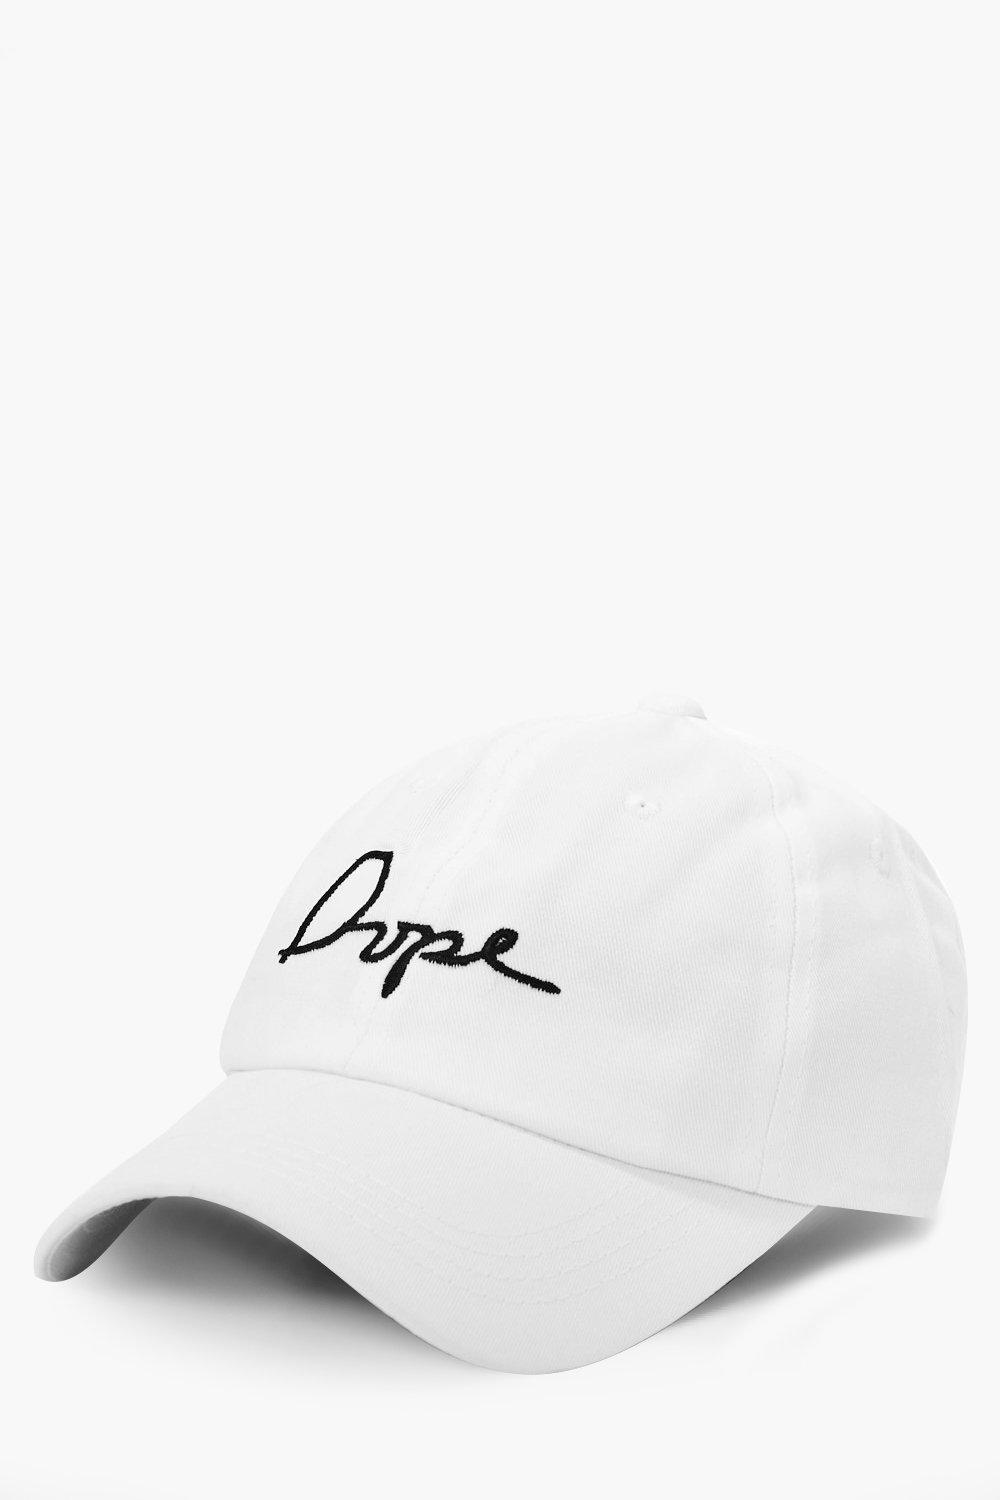 Dope Embroidered Cap - white - White Dope Embroide